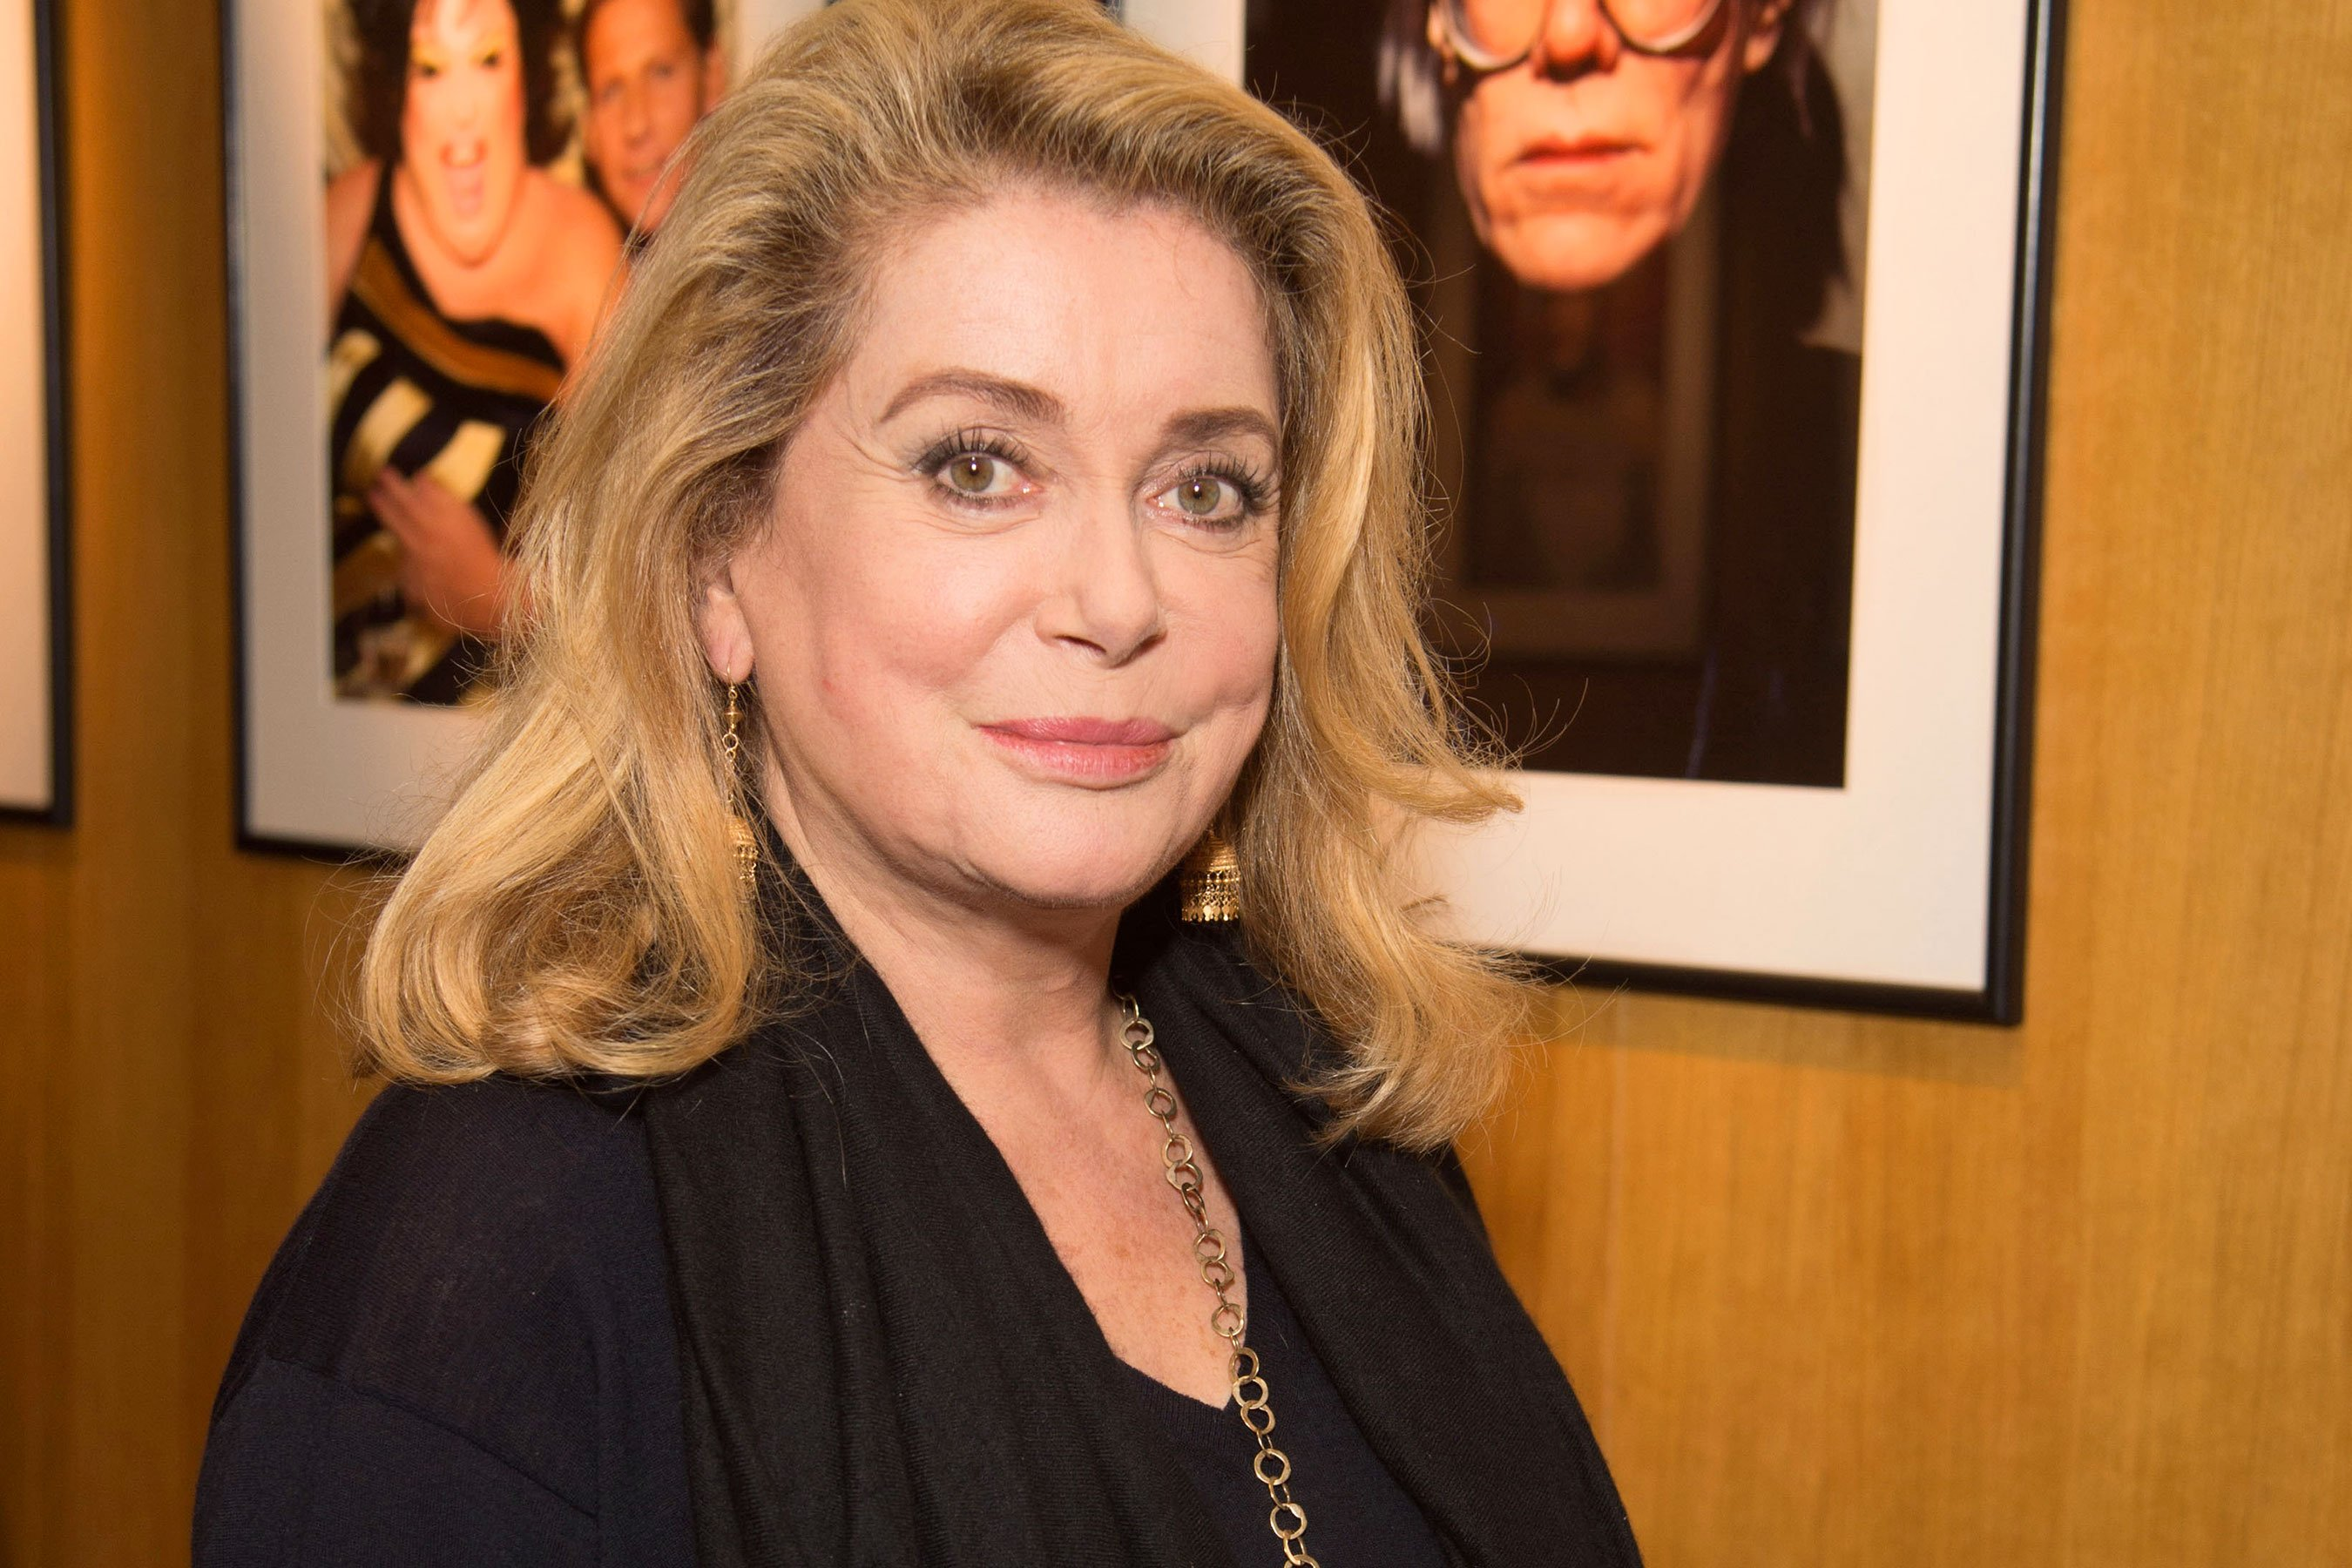 Catherine Deneuve signs letter calling anti-sexual harassment movement a 'witch-hunt'